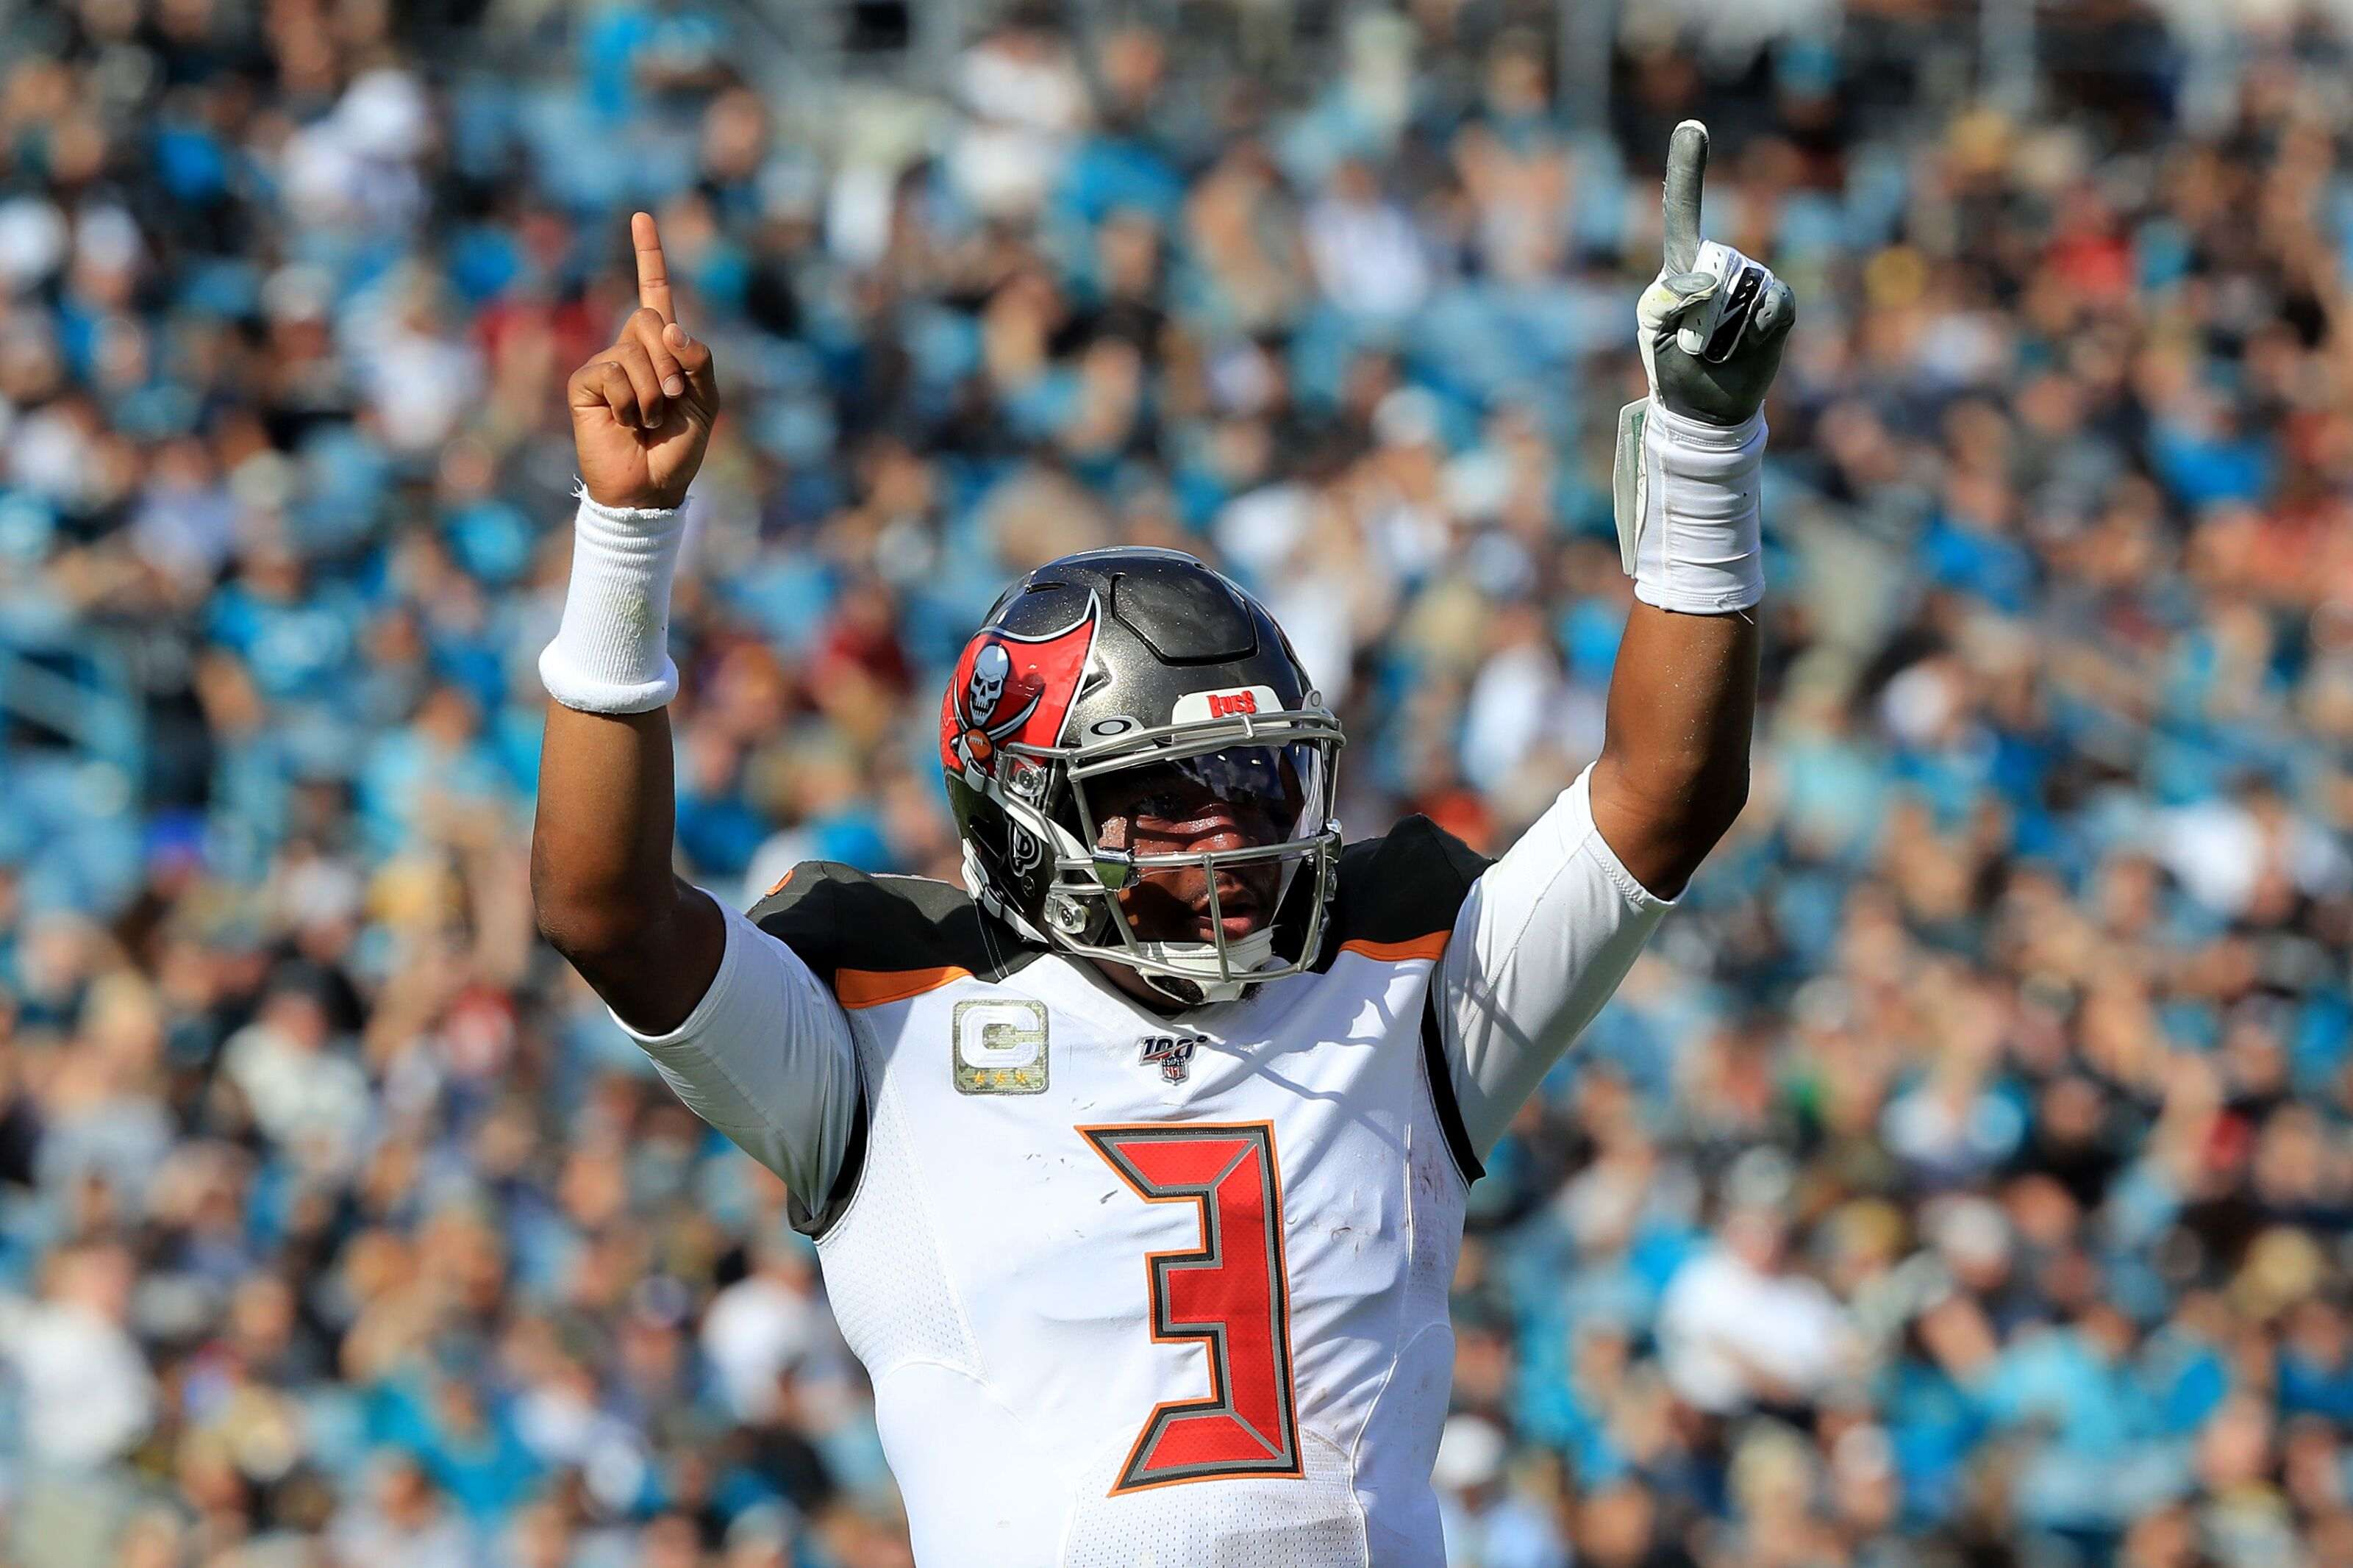 Buccaneers Bets: Tampa Bay looks to stay hot against Colts